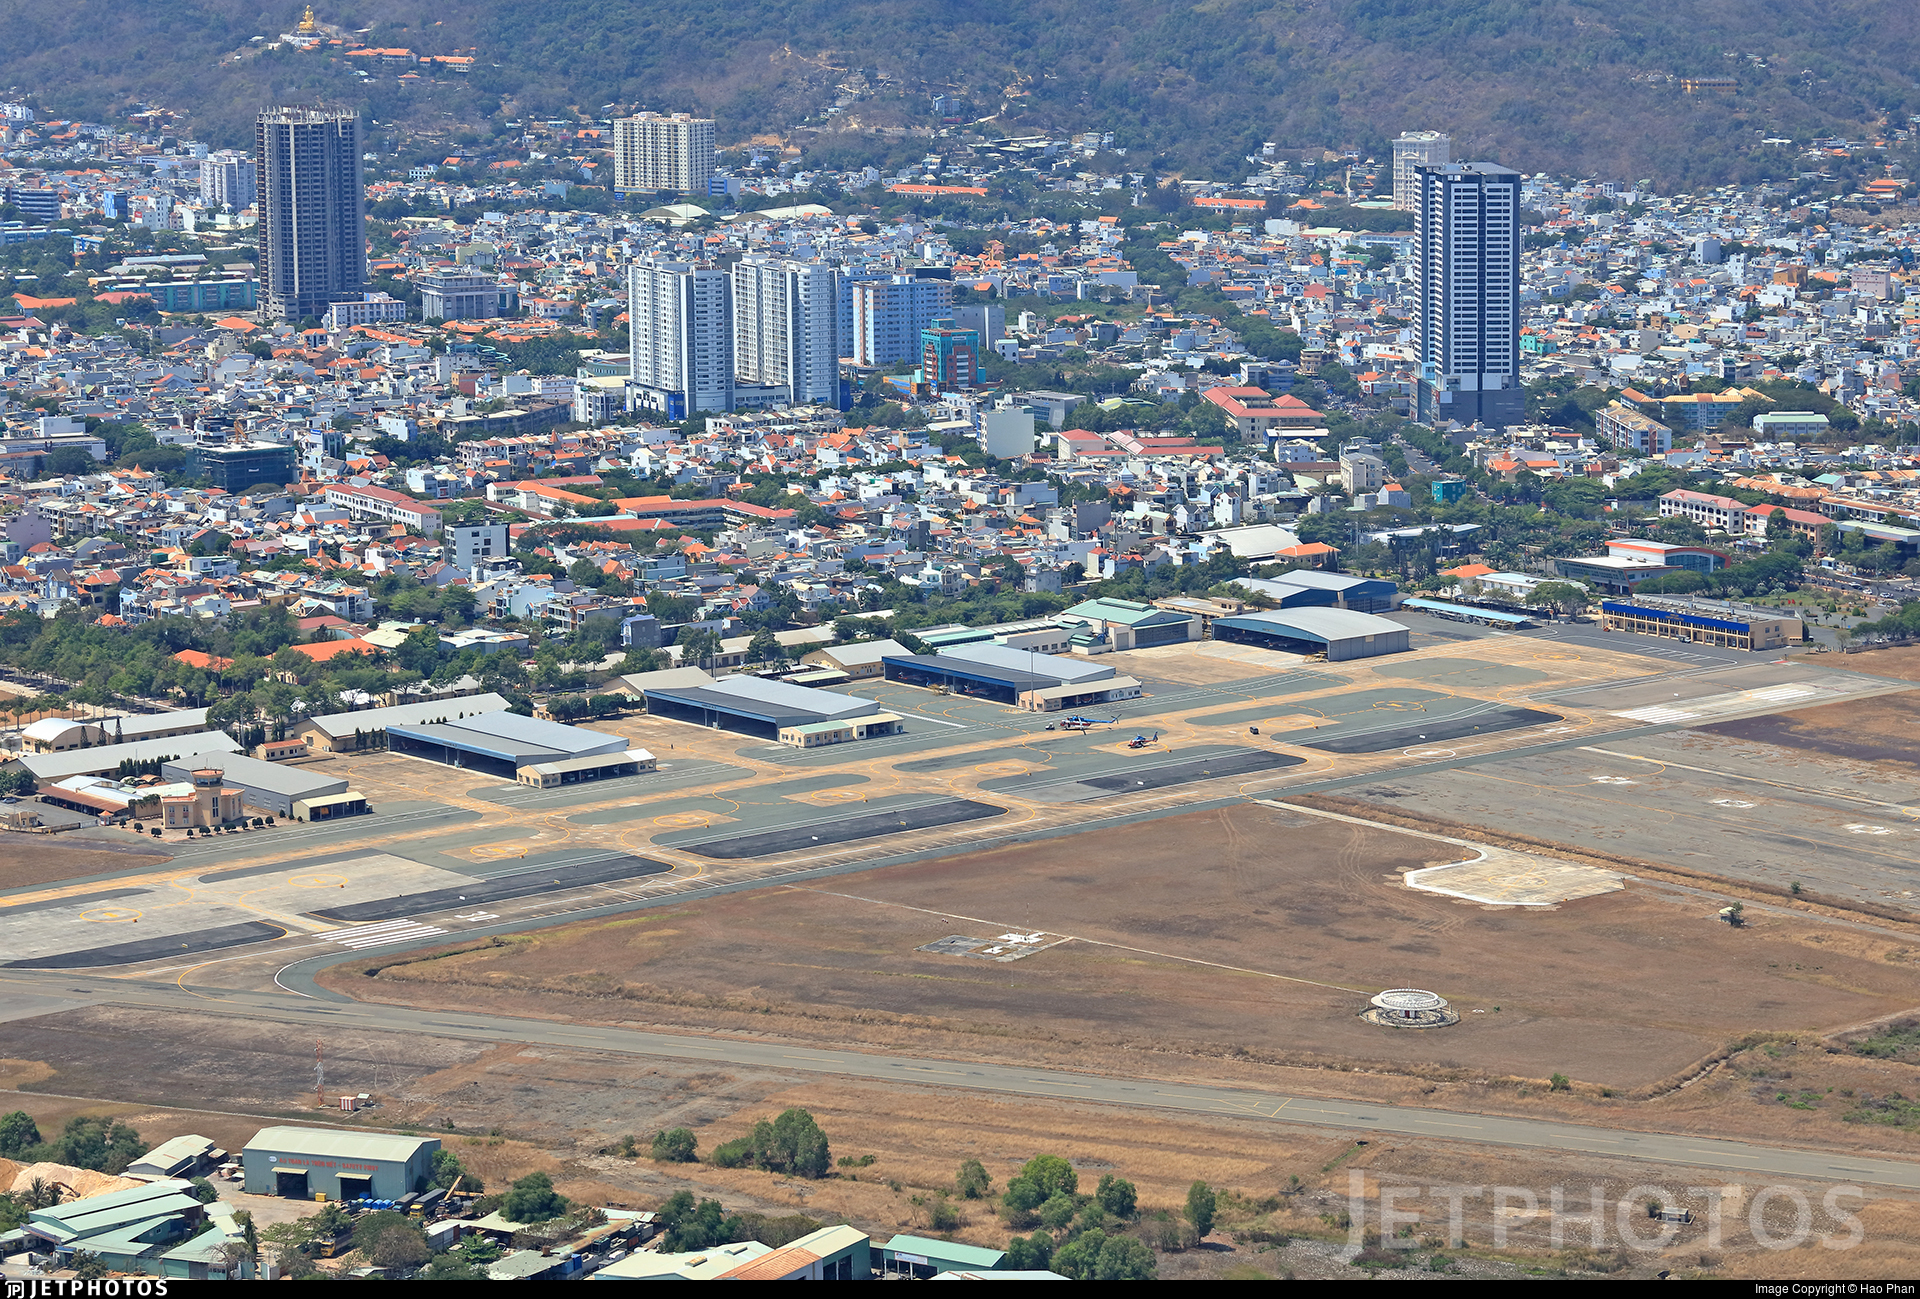 VVVT - Airport - Airport Overview